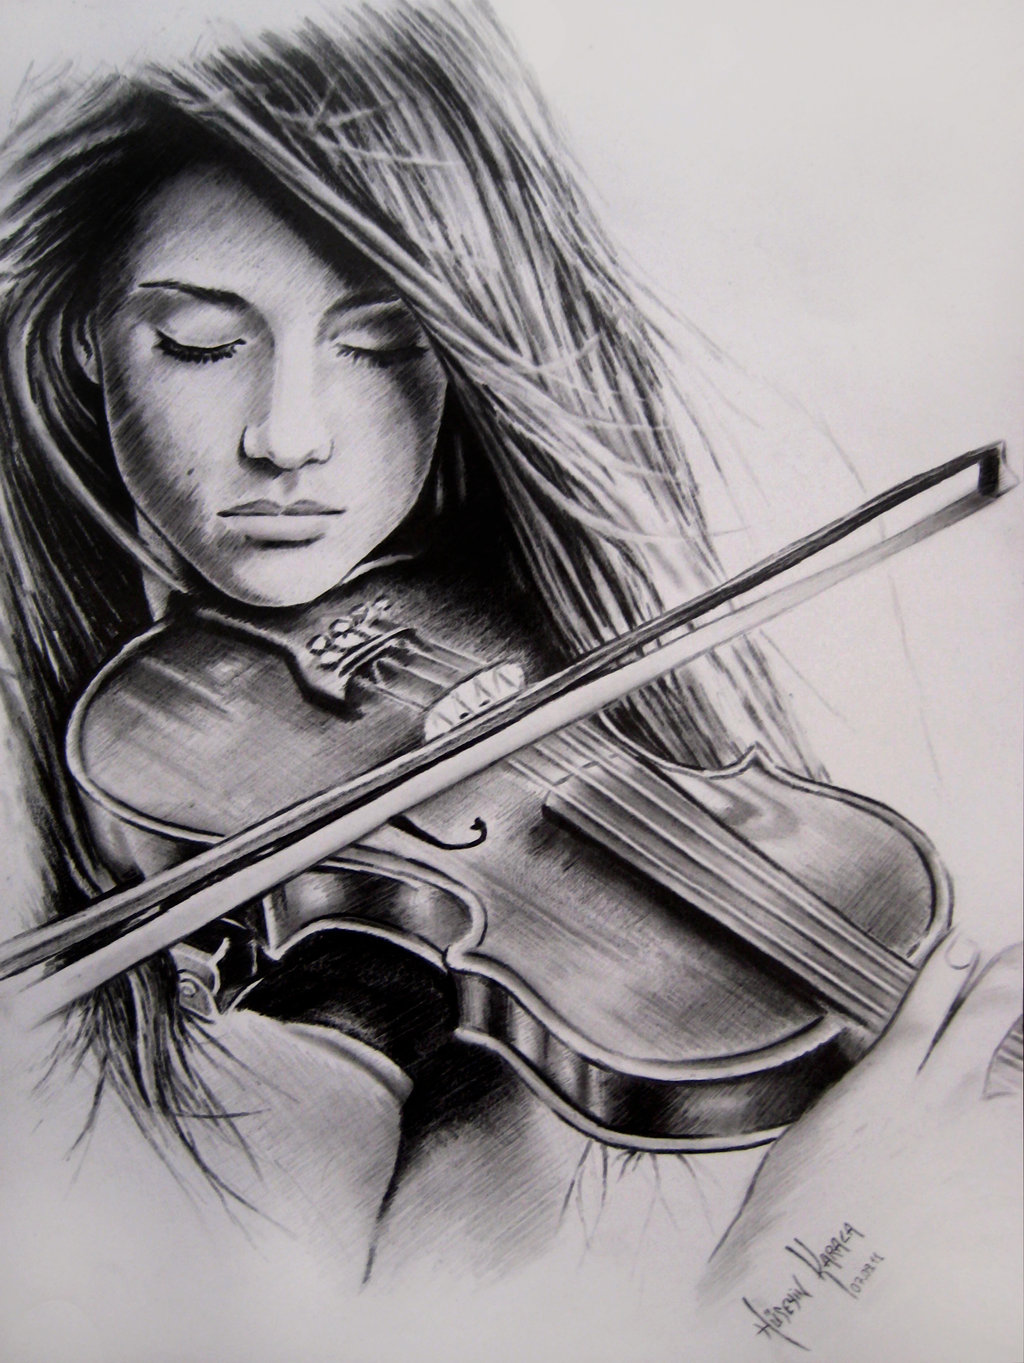 Drawn violinist fiddle Google violin  Search playing